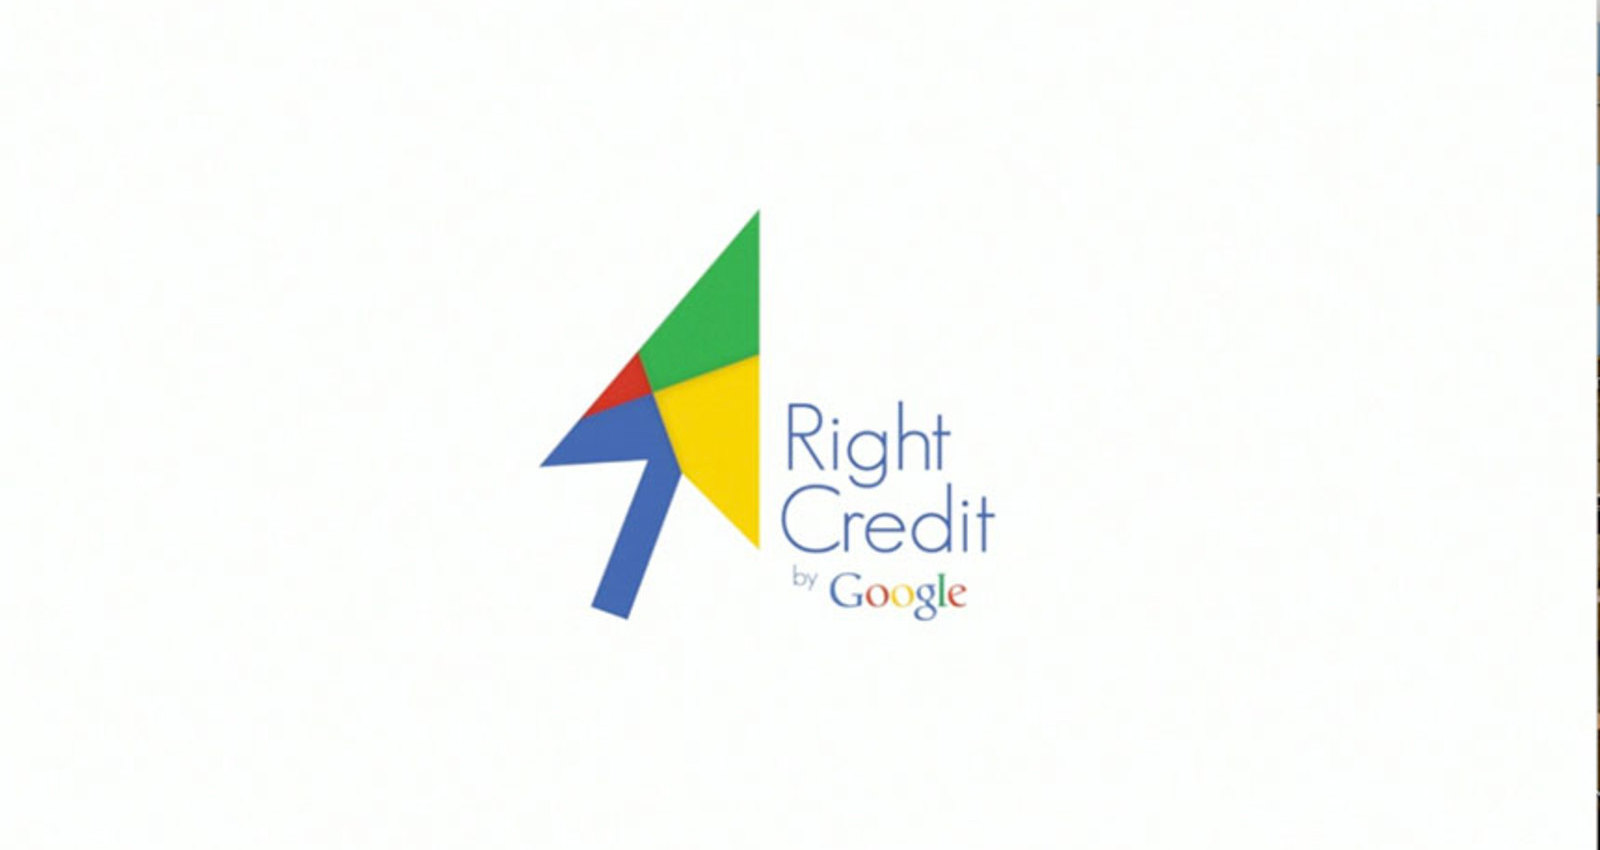 Right Credit by Google